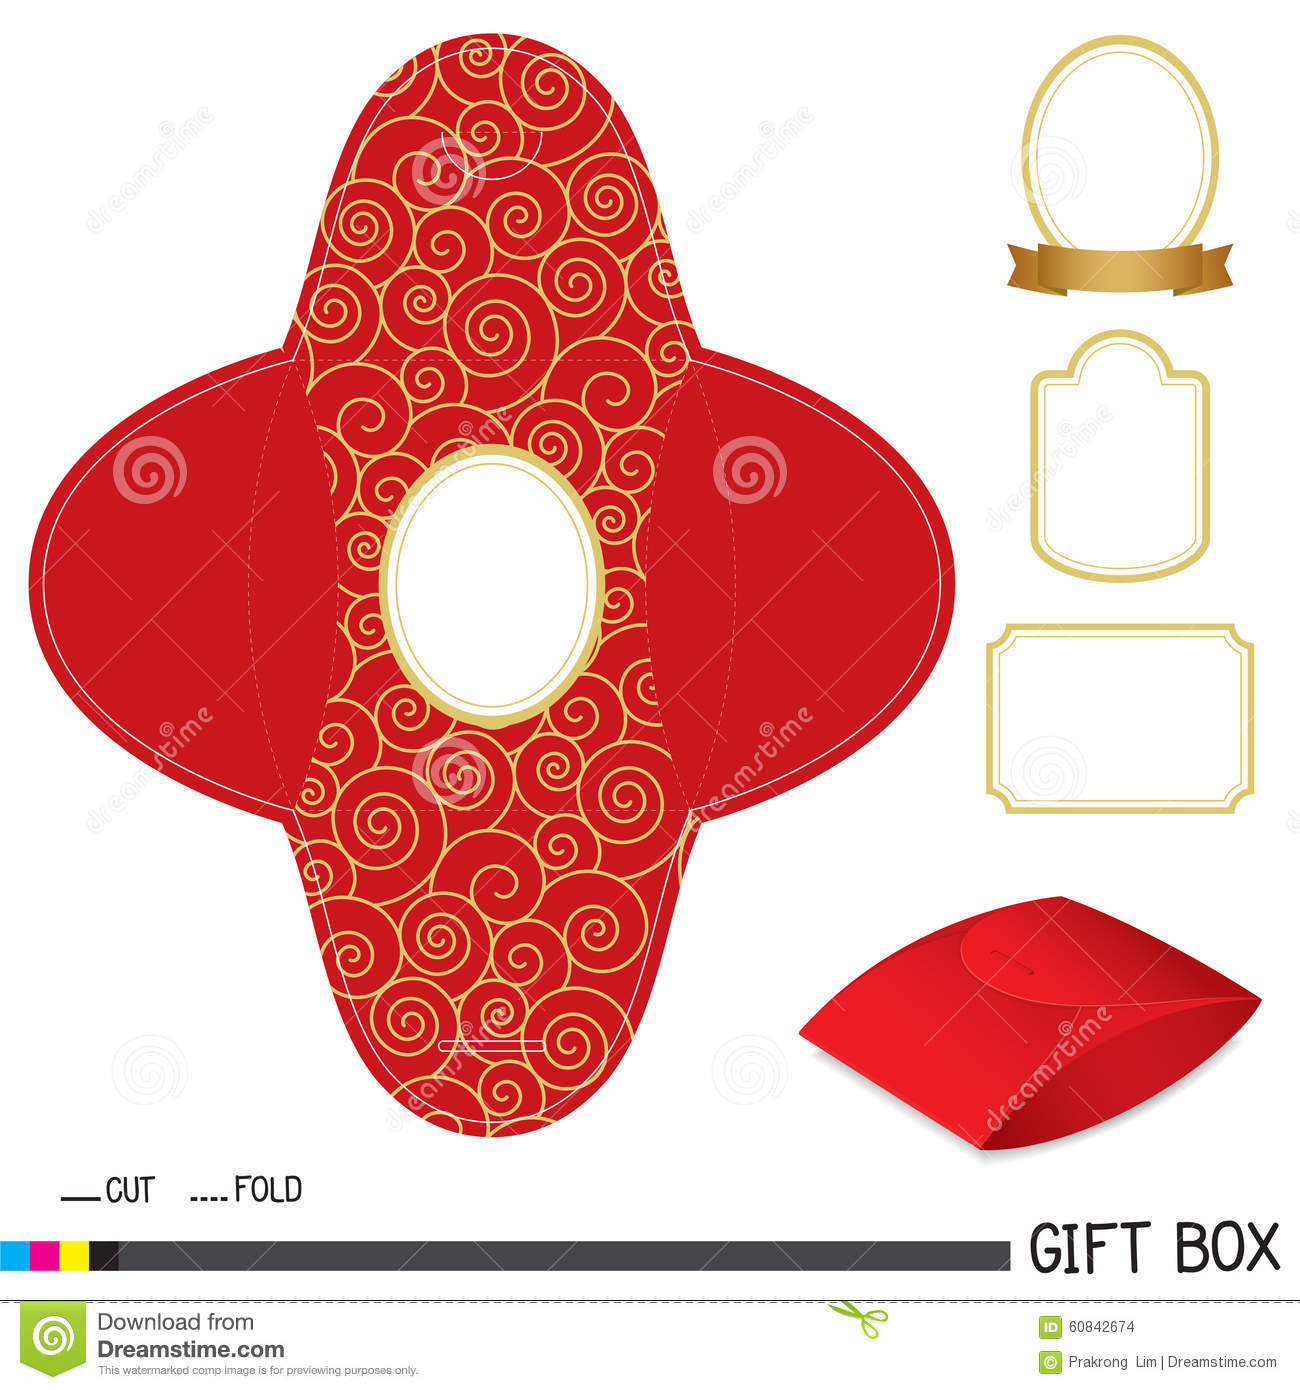 red gift box design with label stock vector illustration of gift